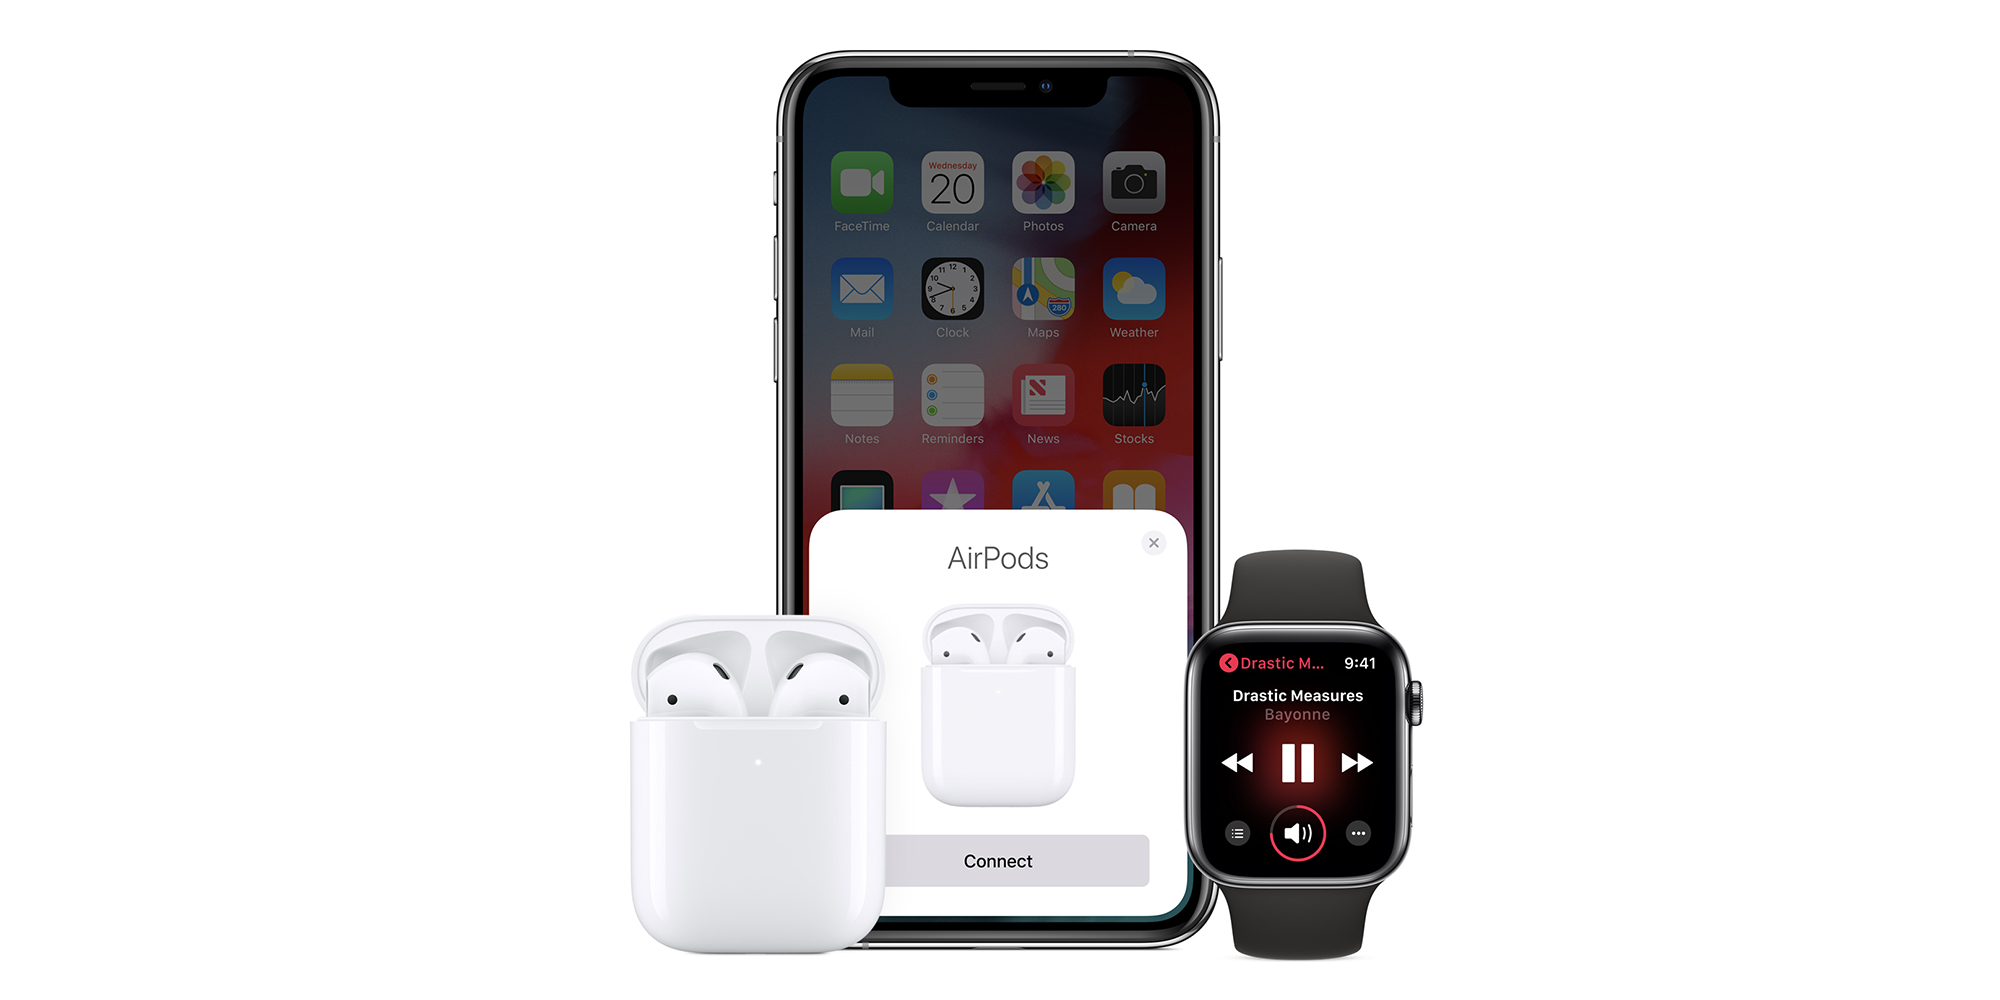 4d710b50756 Latest Apple AirPods on sale from $140, w/ wireless charging case $180  (Reg. $199)